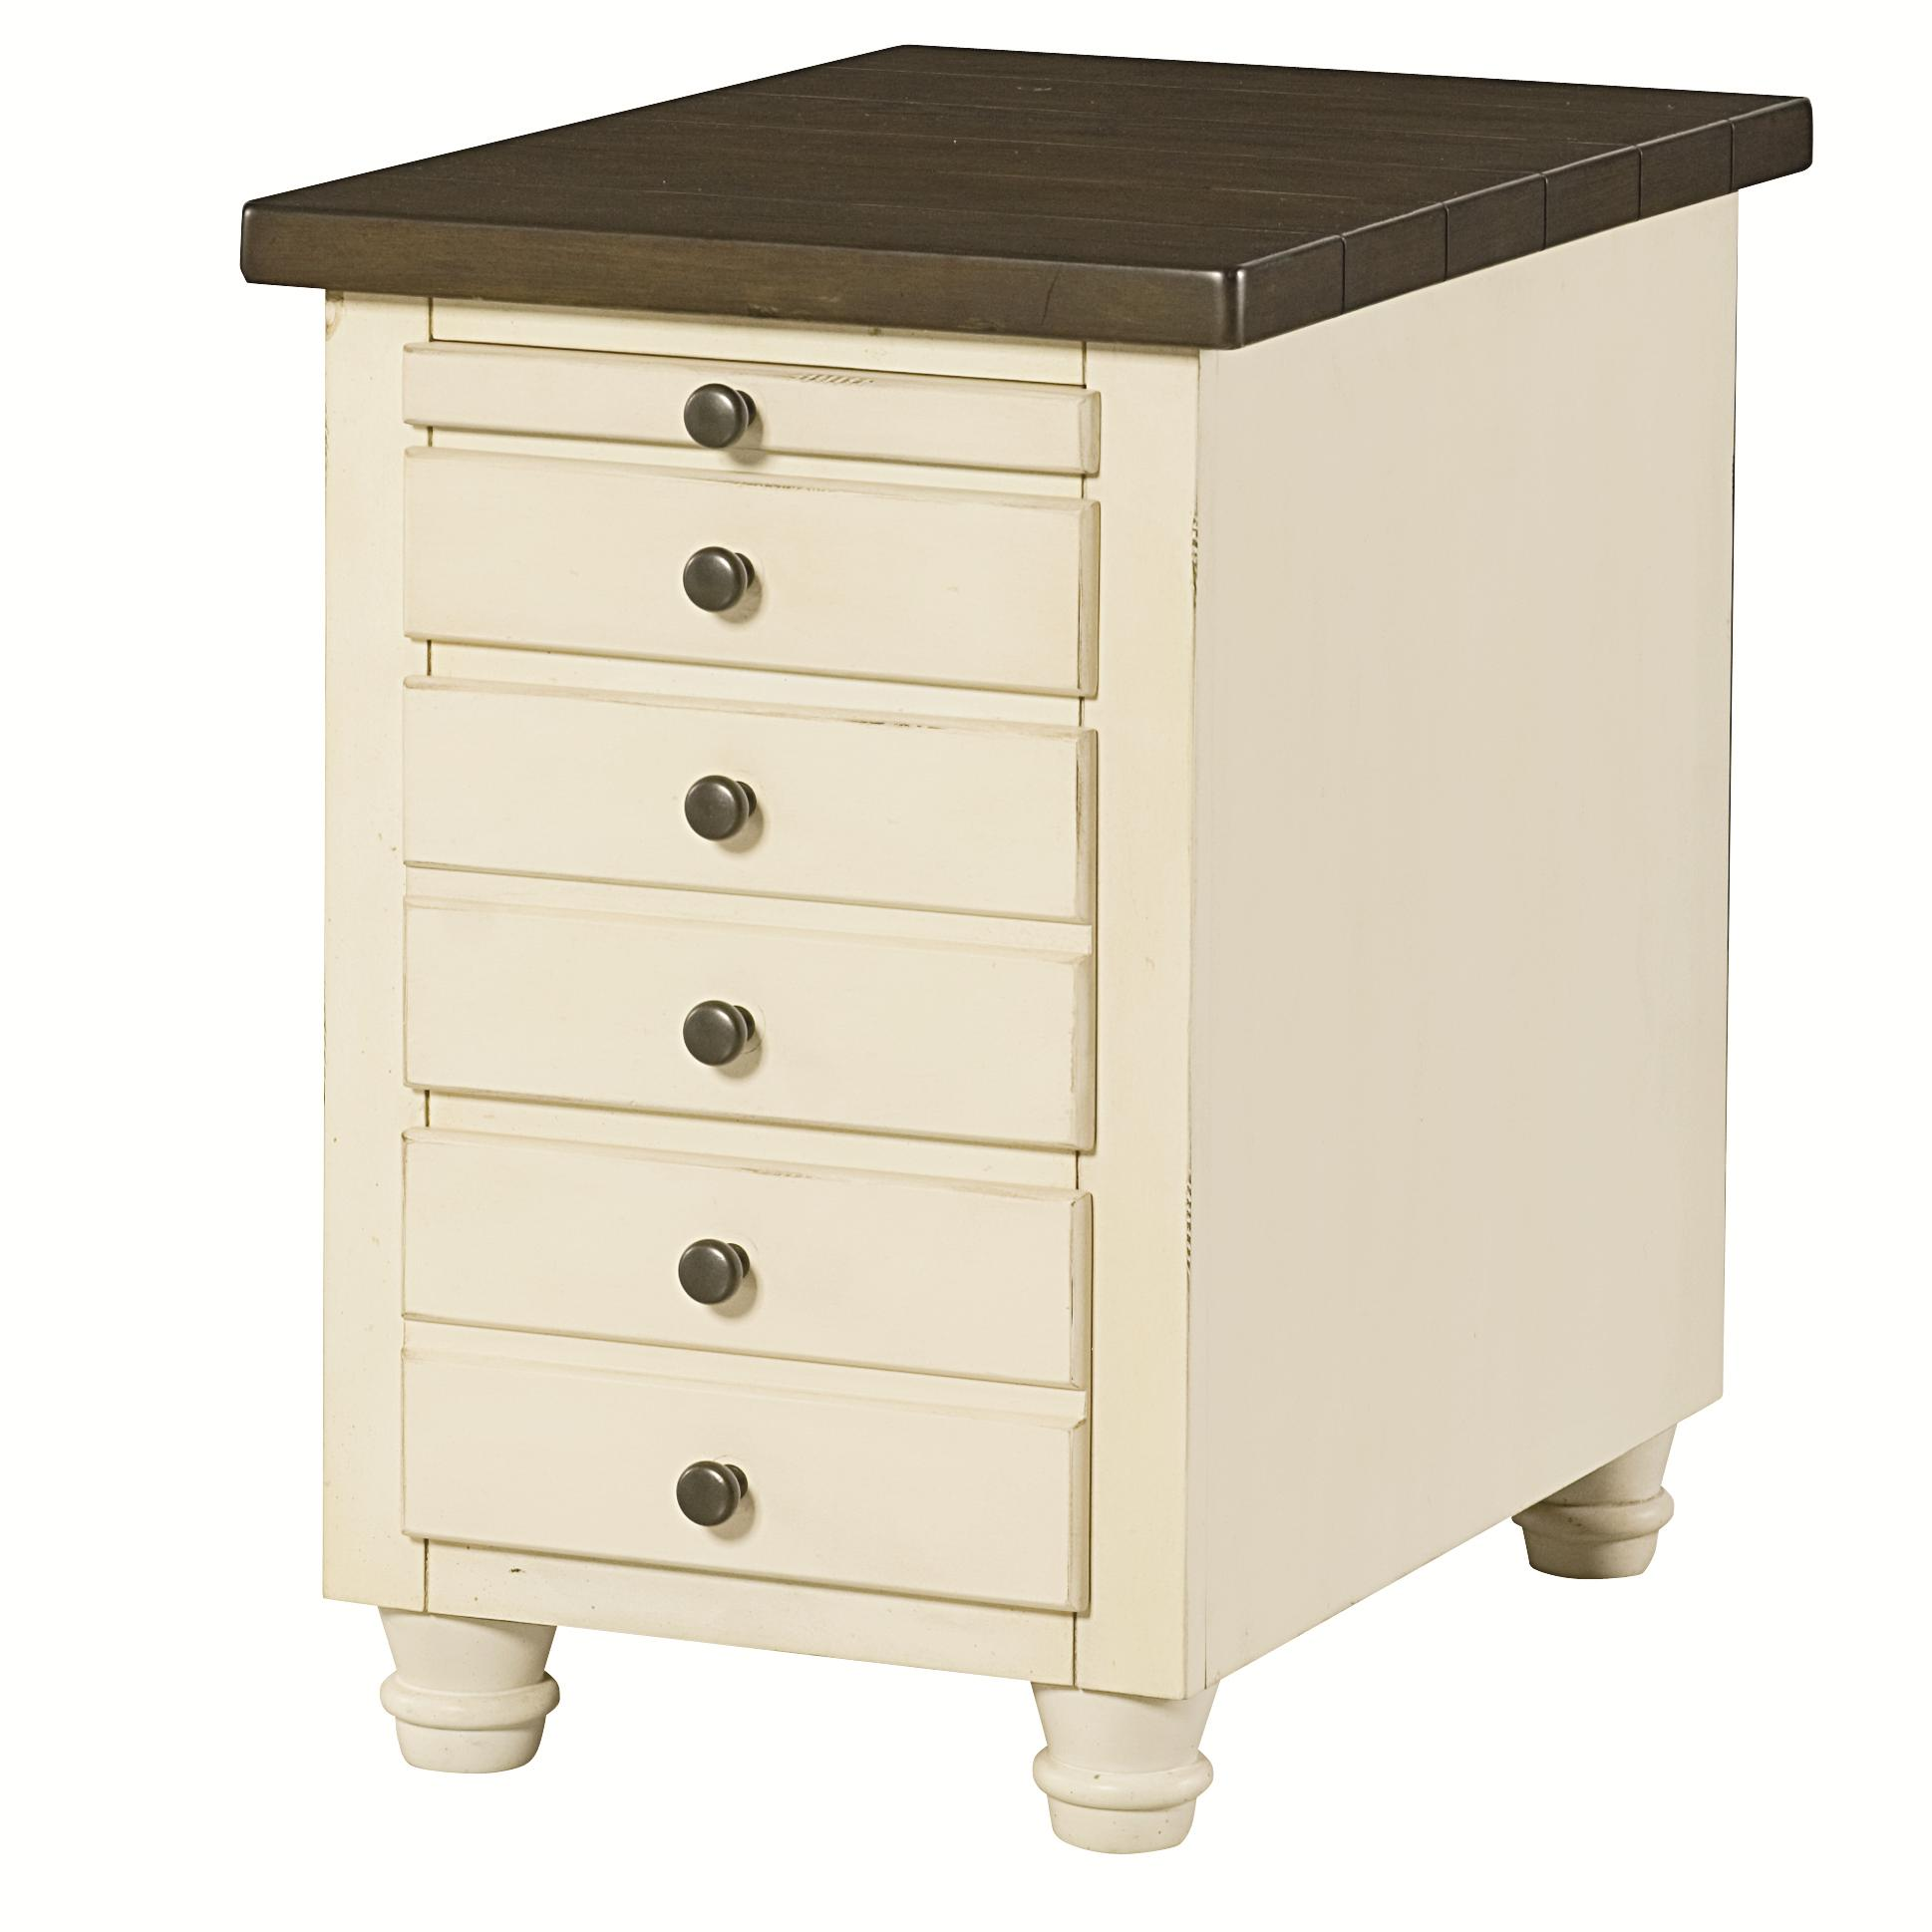 Hammary Heartland 346 916 Chairside Table Chest With 3